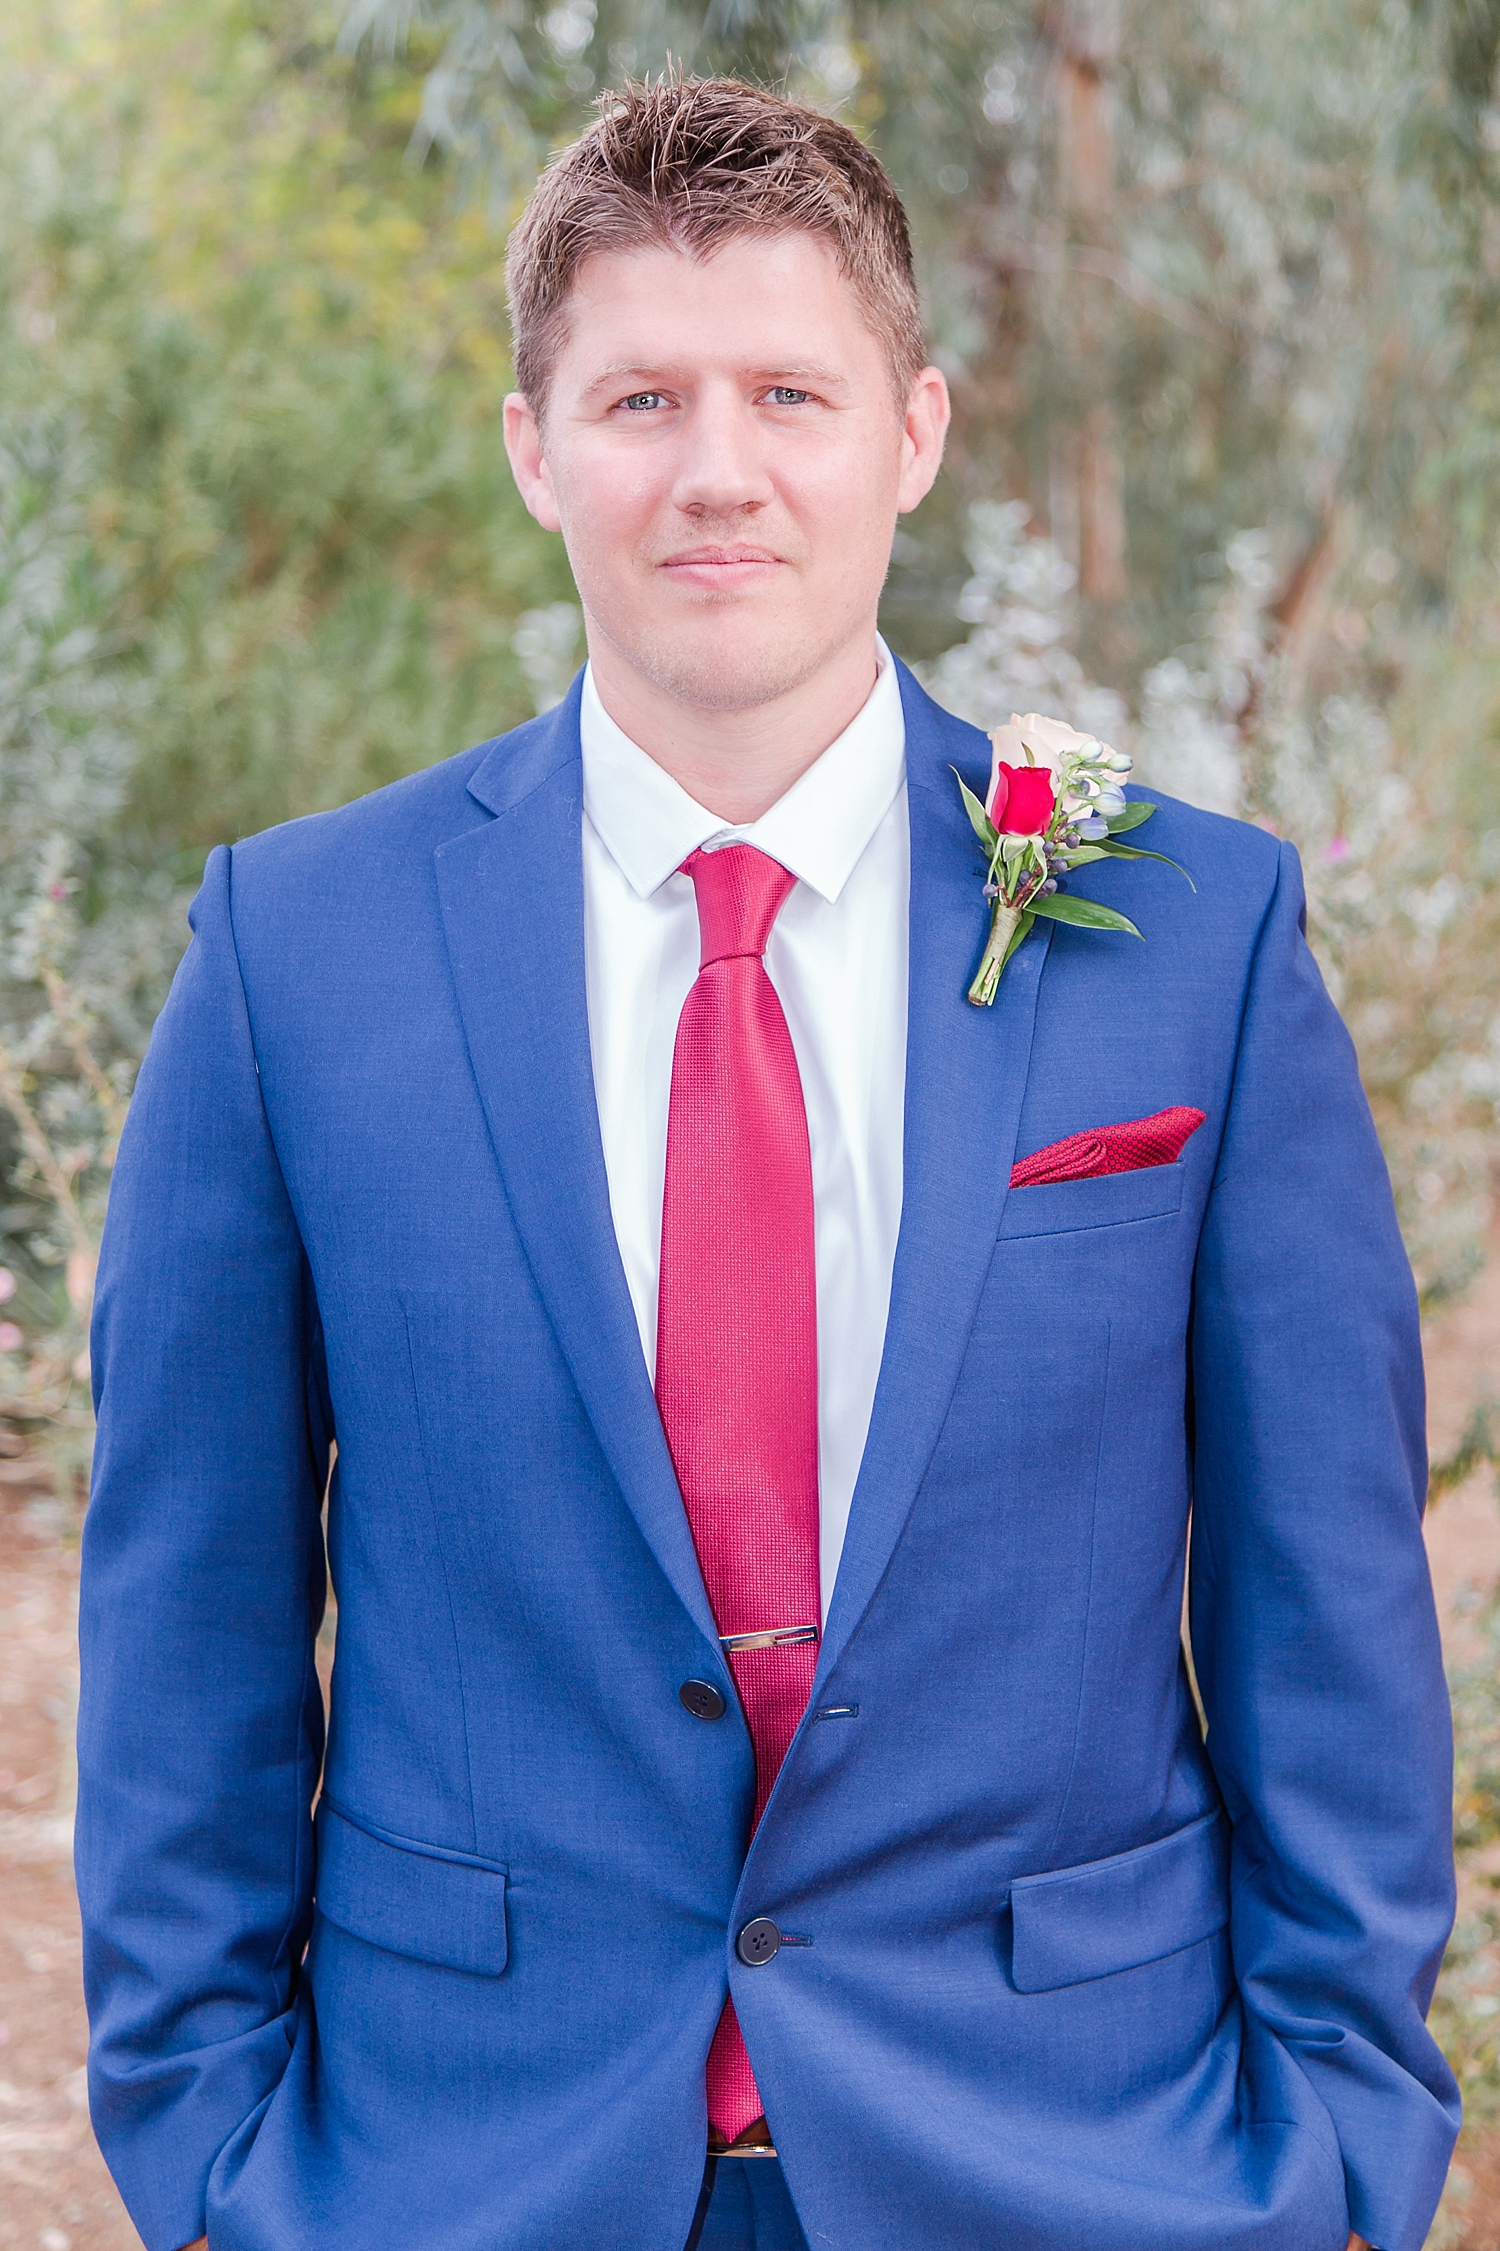 My now husband, Kevin! He's truly the best man I know! -